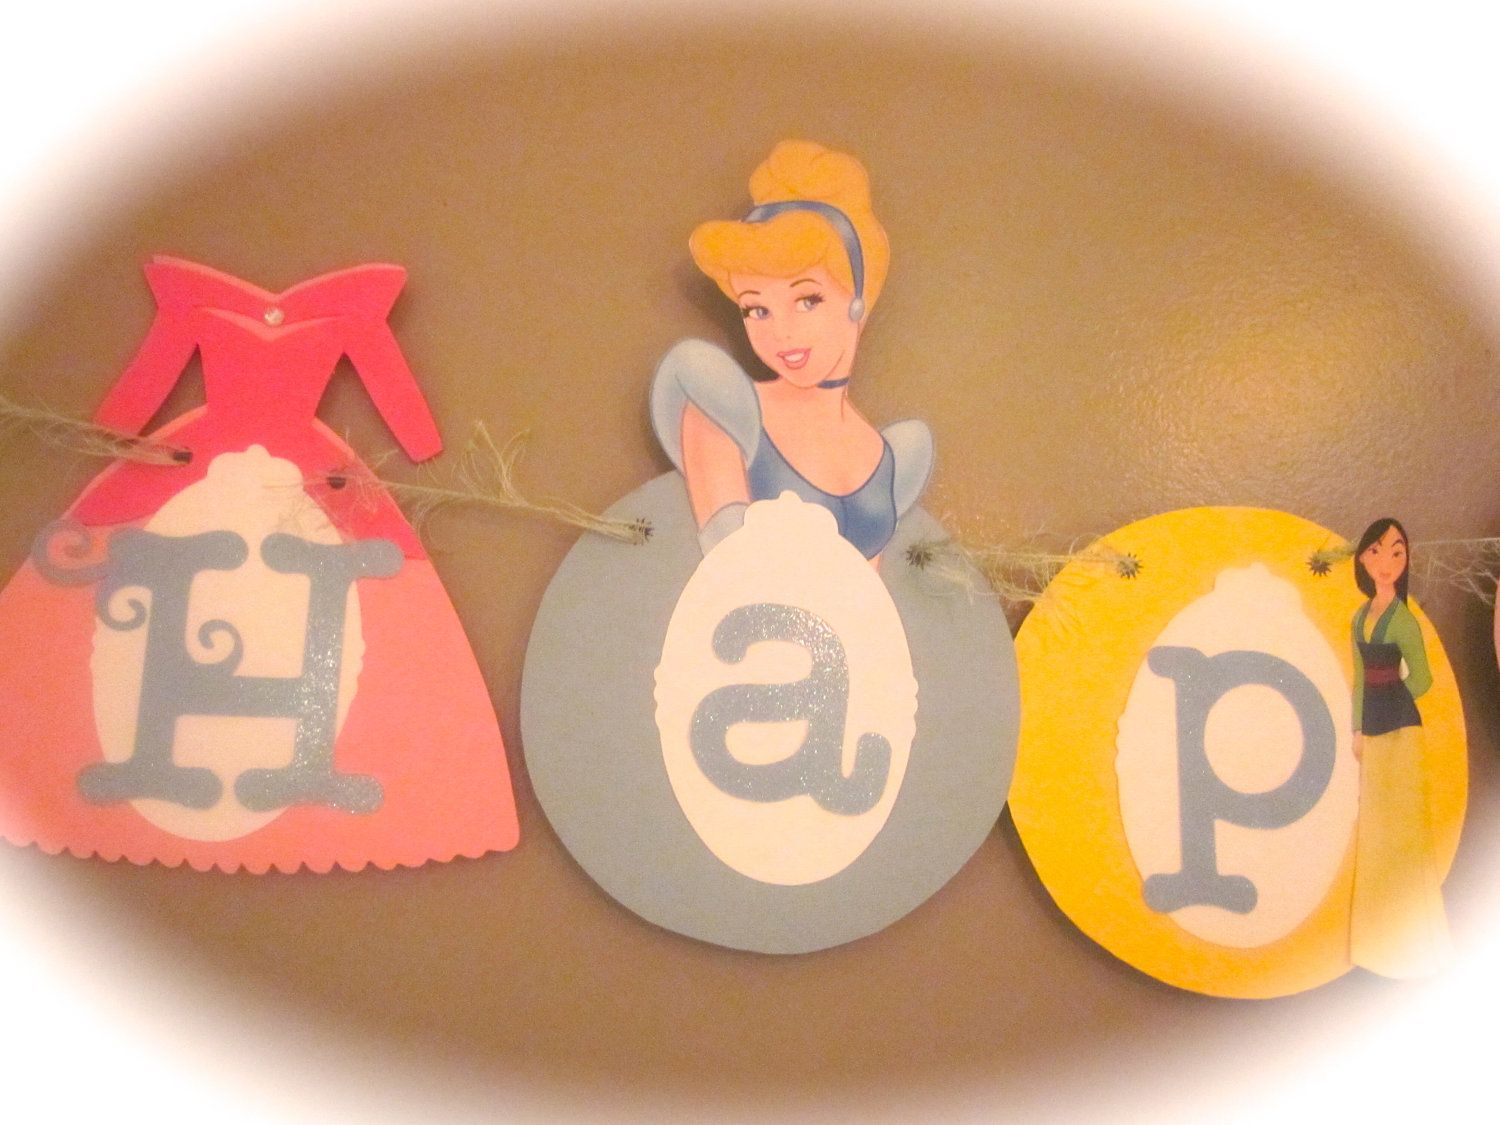 Happy 1st Birthday banner Disney princess party cinderella snow